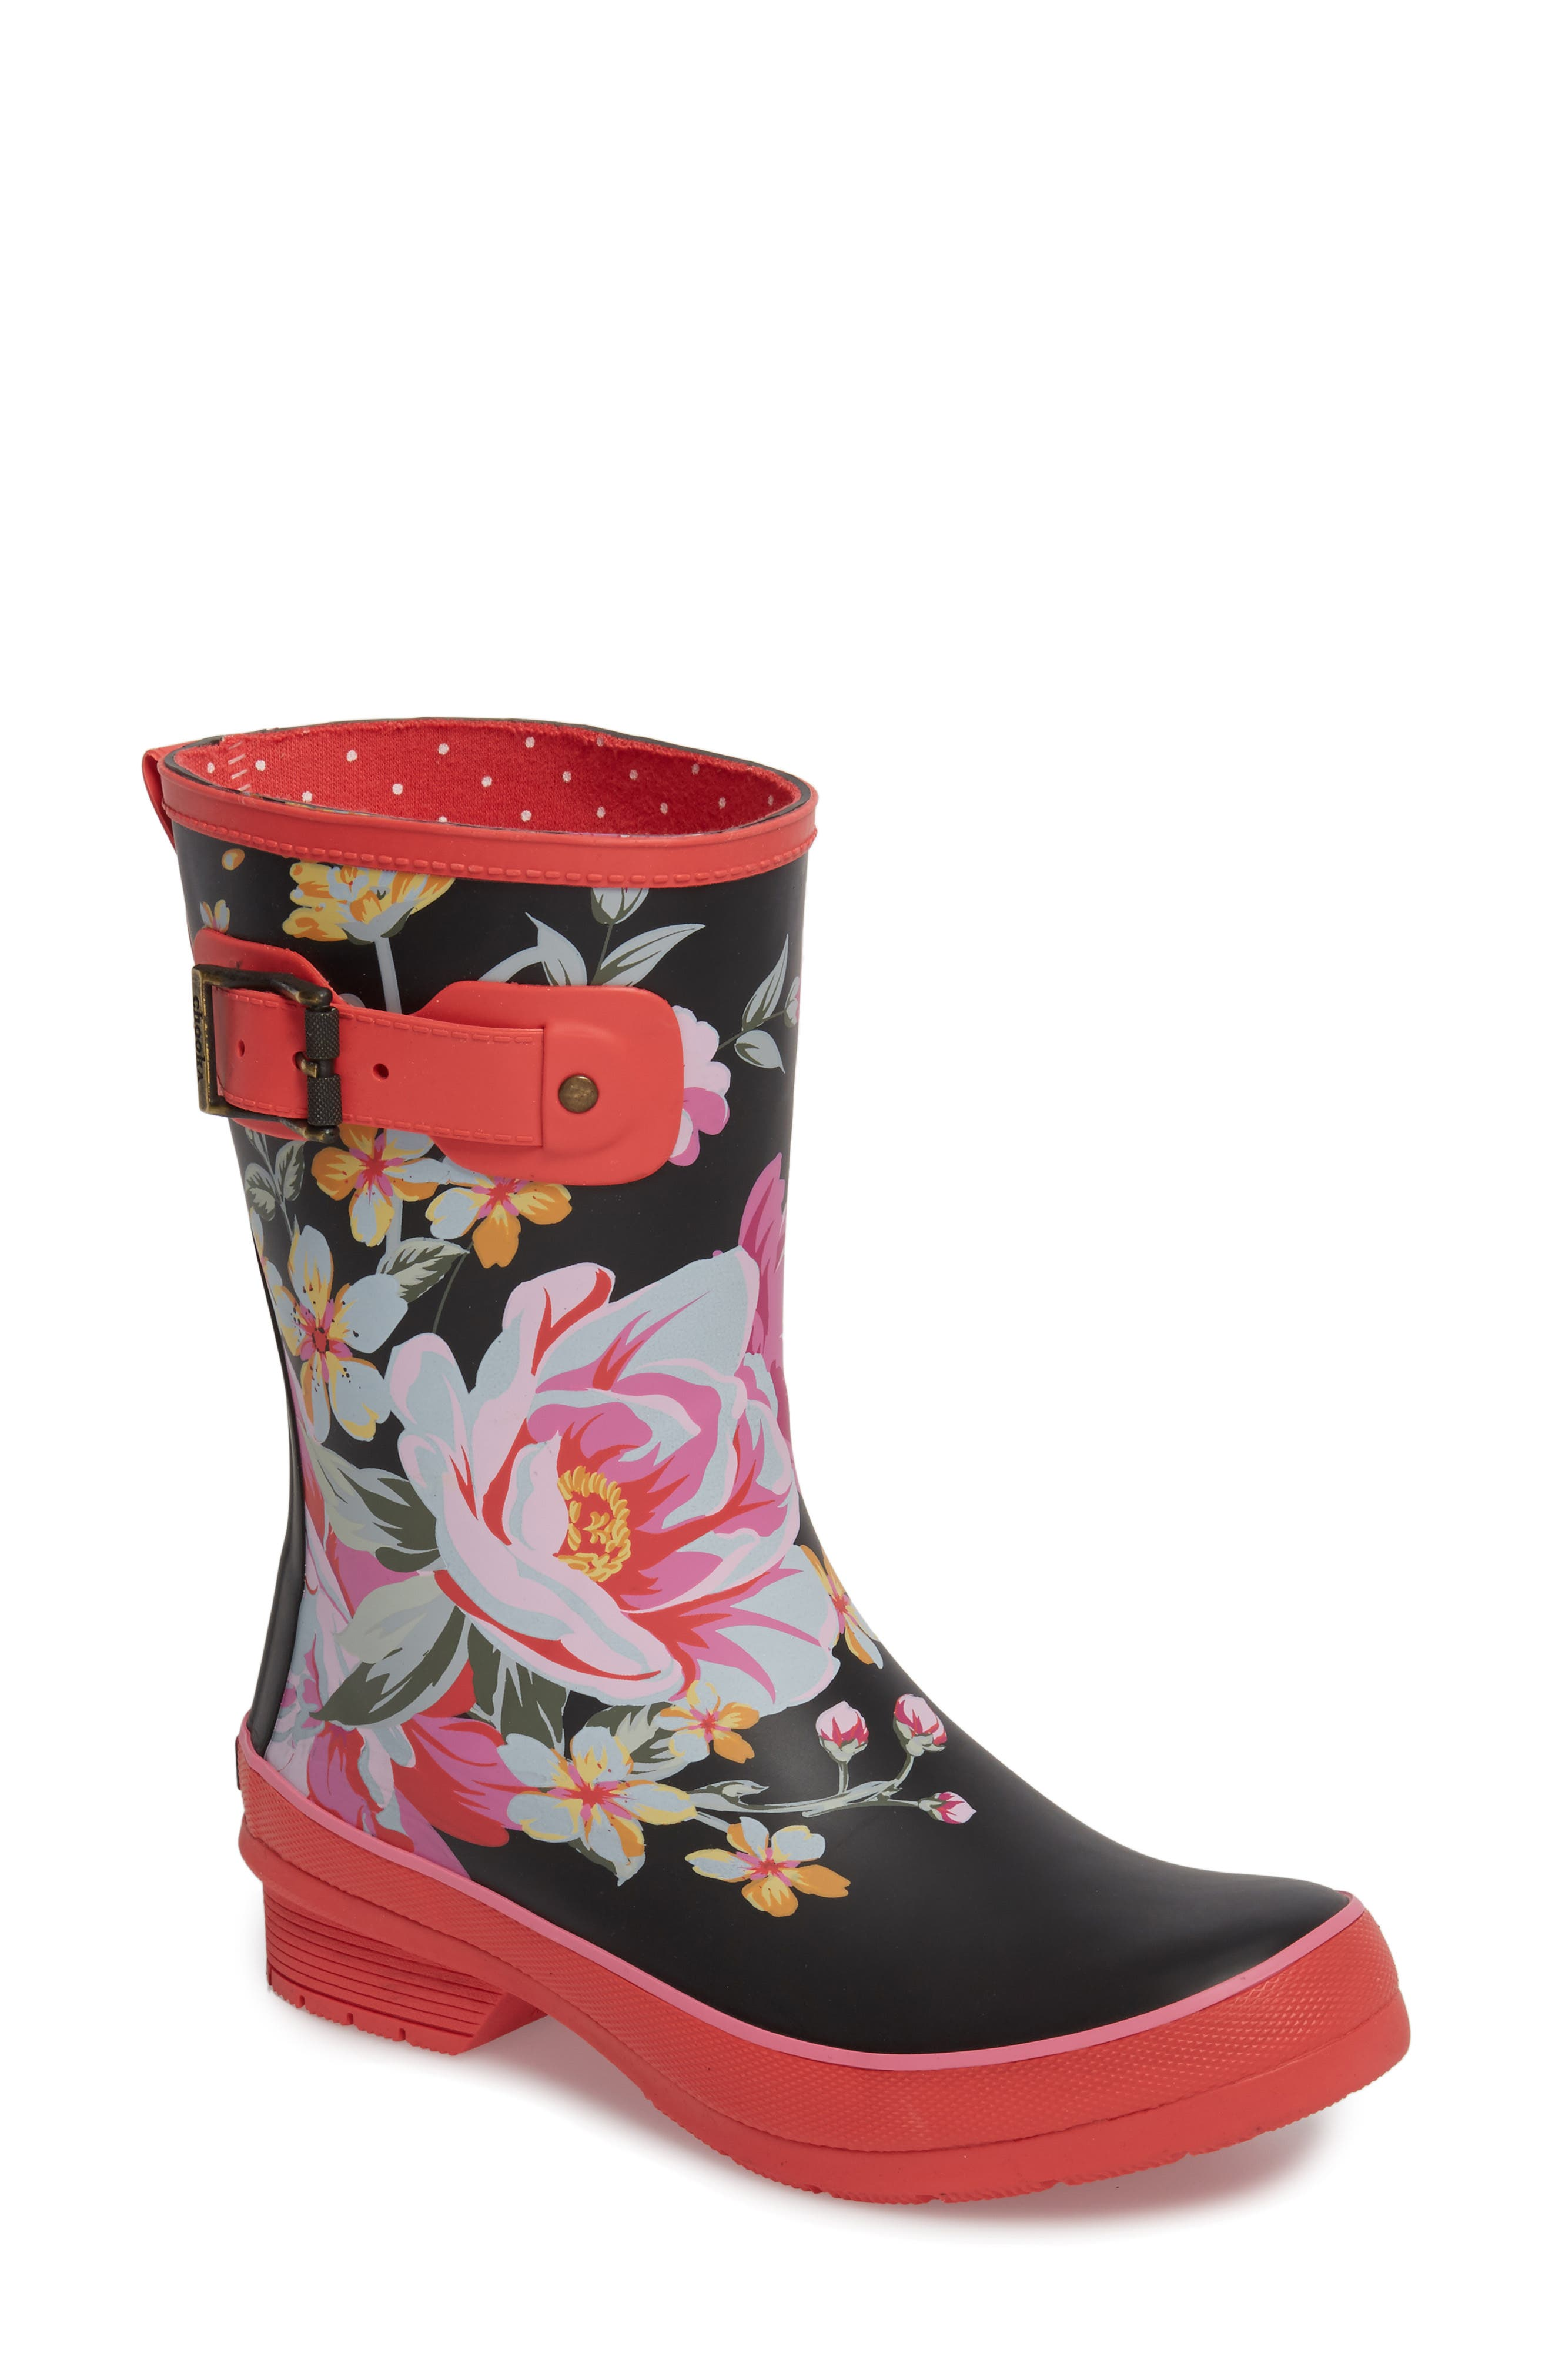 Hilde Mid Rain Boot,                         Main,                         color, Fuchsia